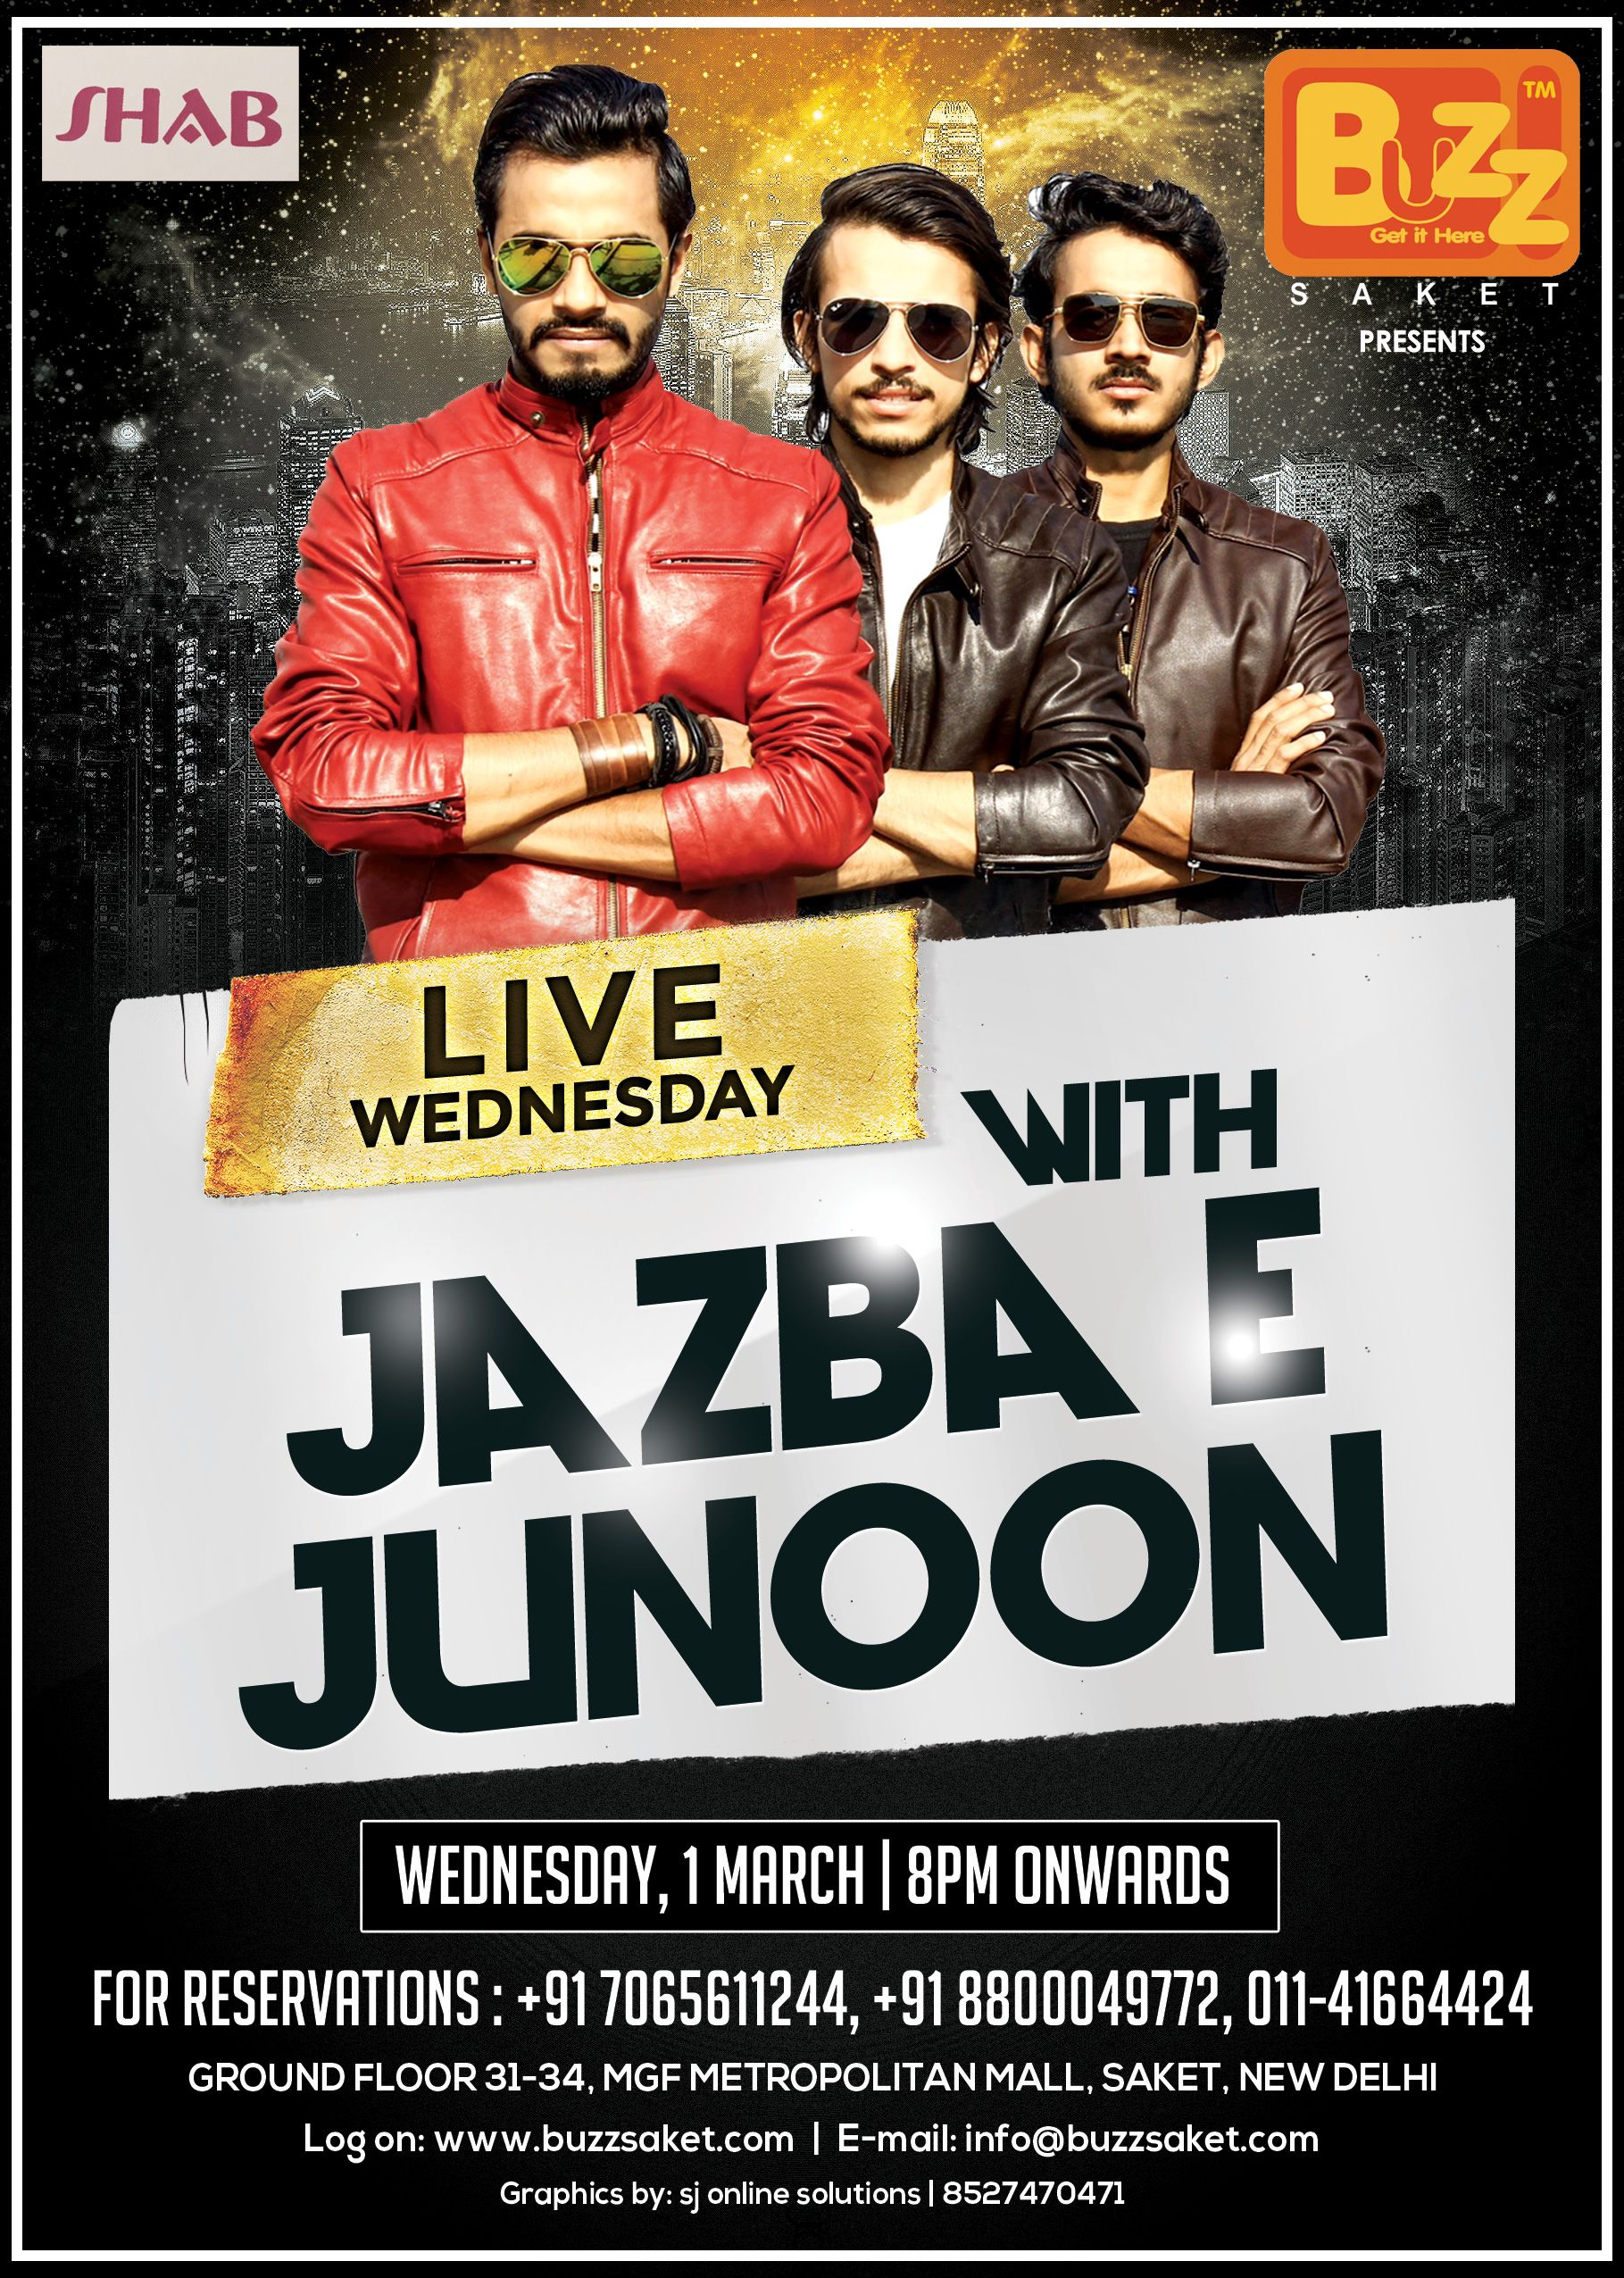 This Wednesday, the amazing band JAZBA - E - JUNOON will spread